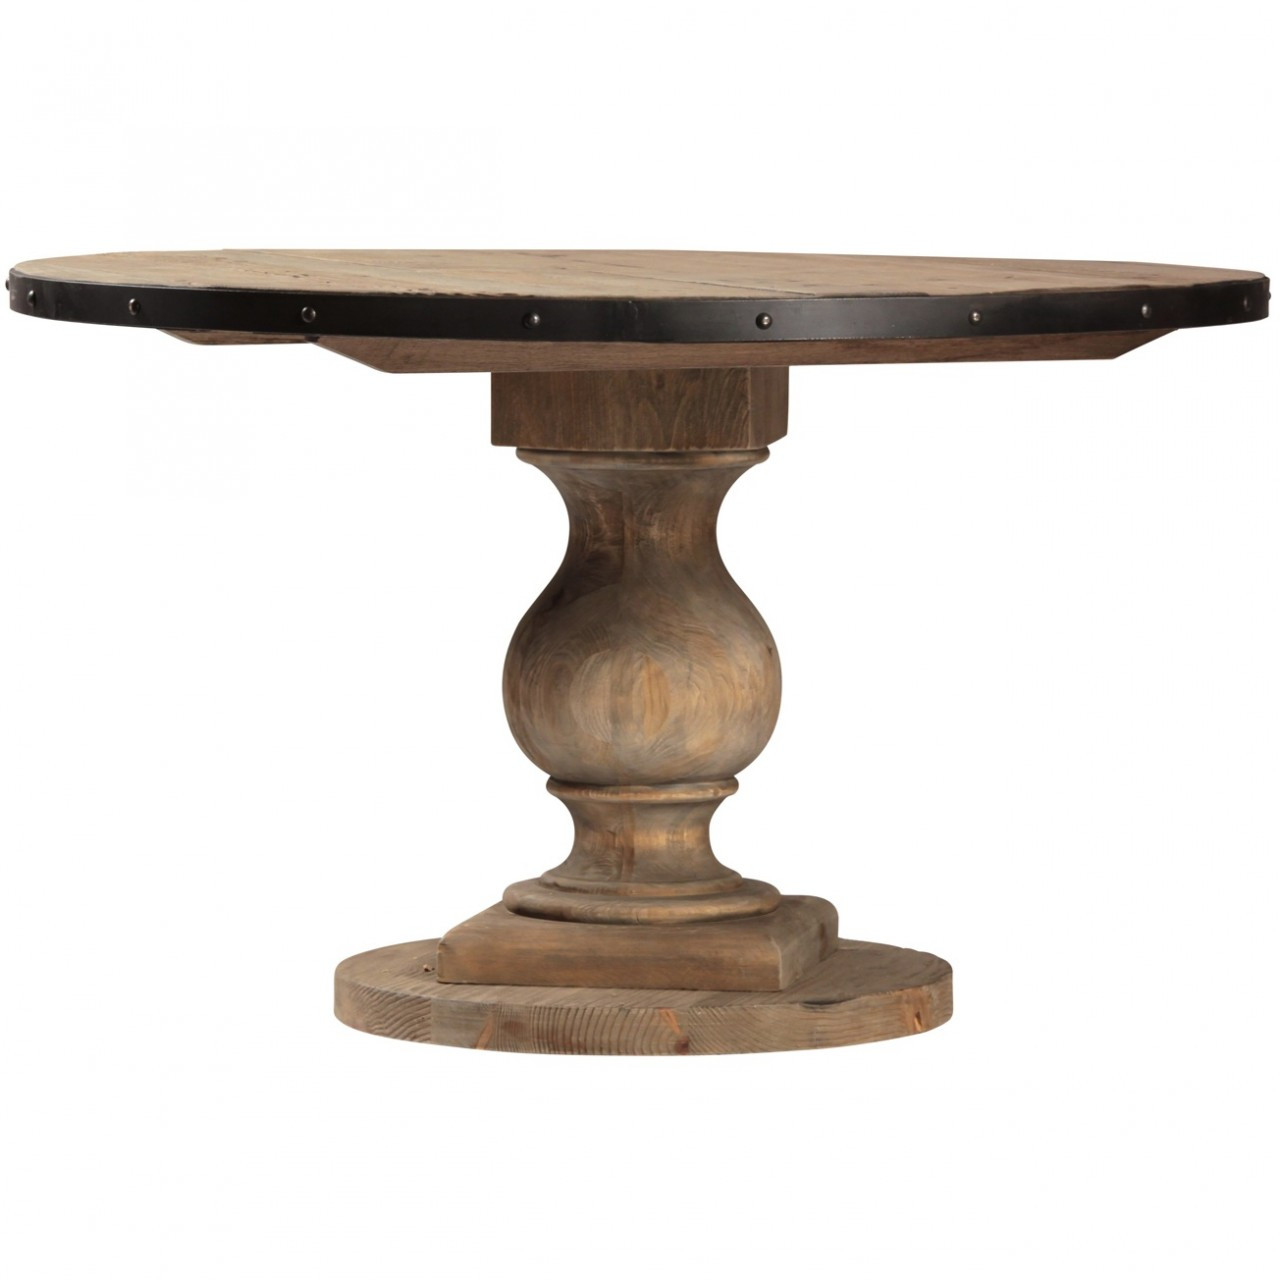 Farmhouse Round Pedestal Dining Room Table 51 Zin Home